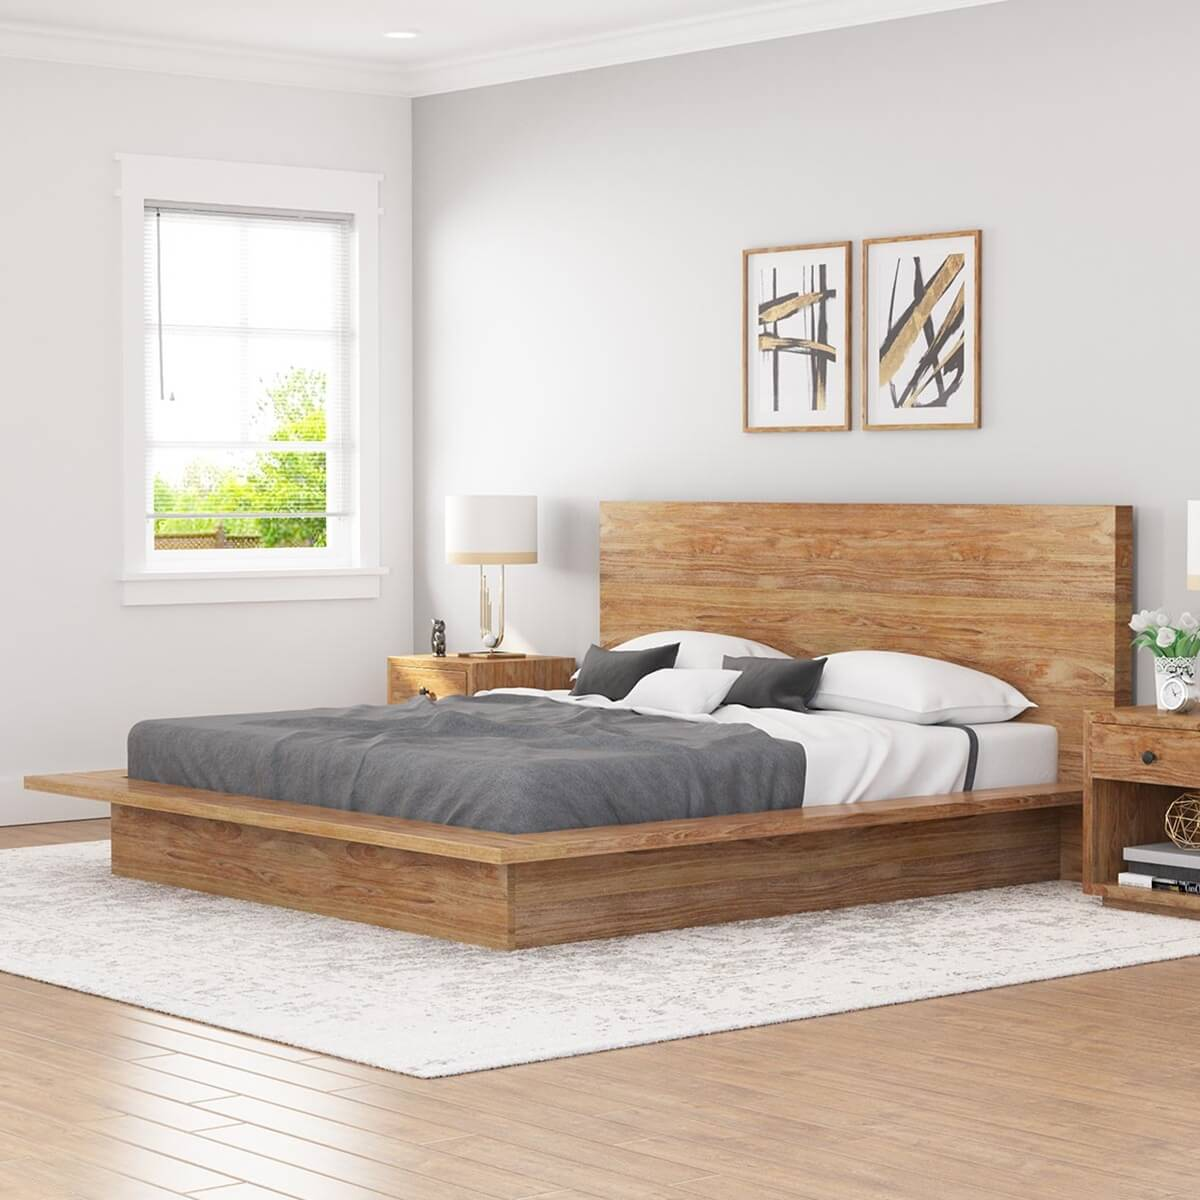 Britain Rustic Teak Wood King Size Platform Bed Frame